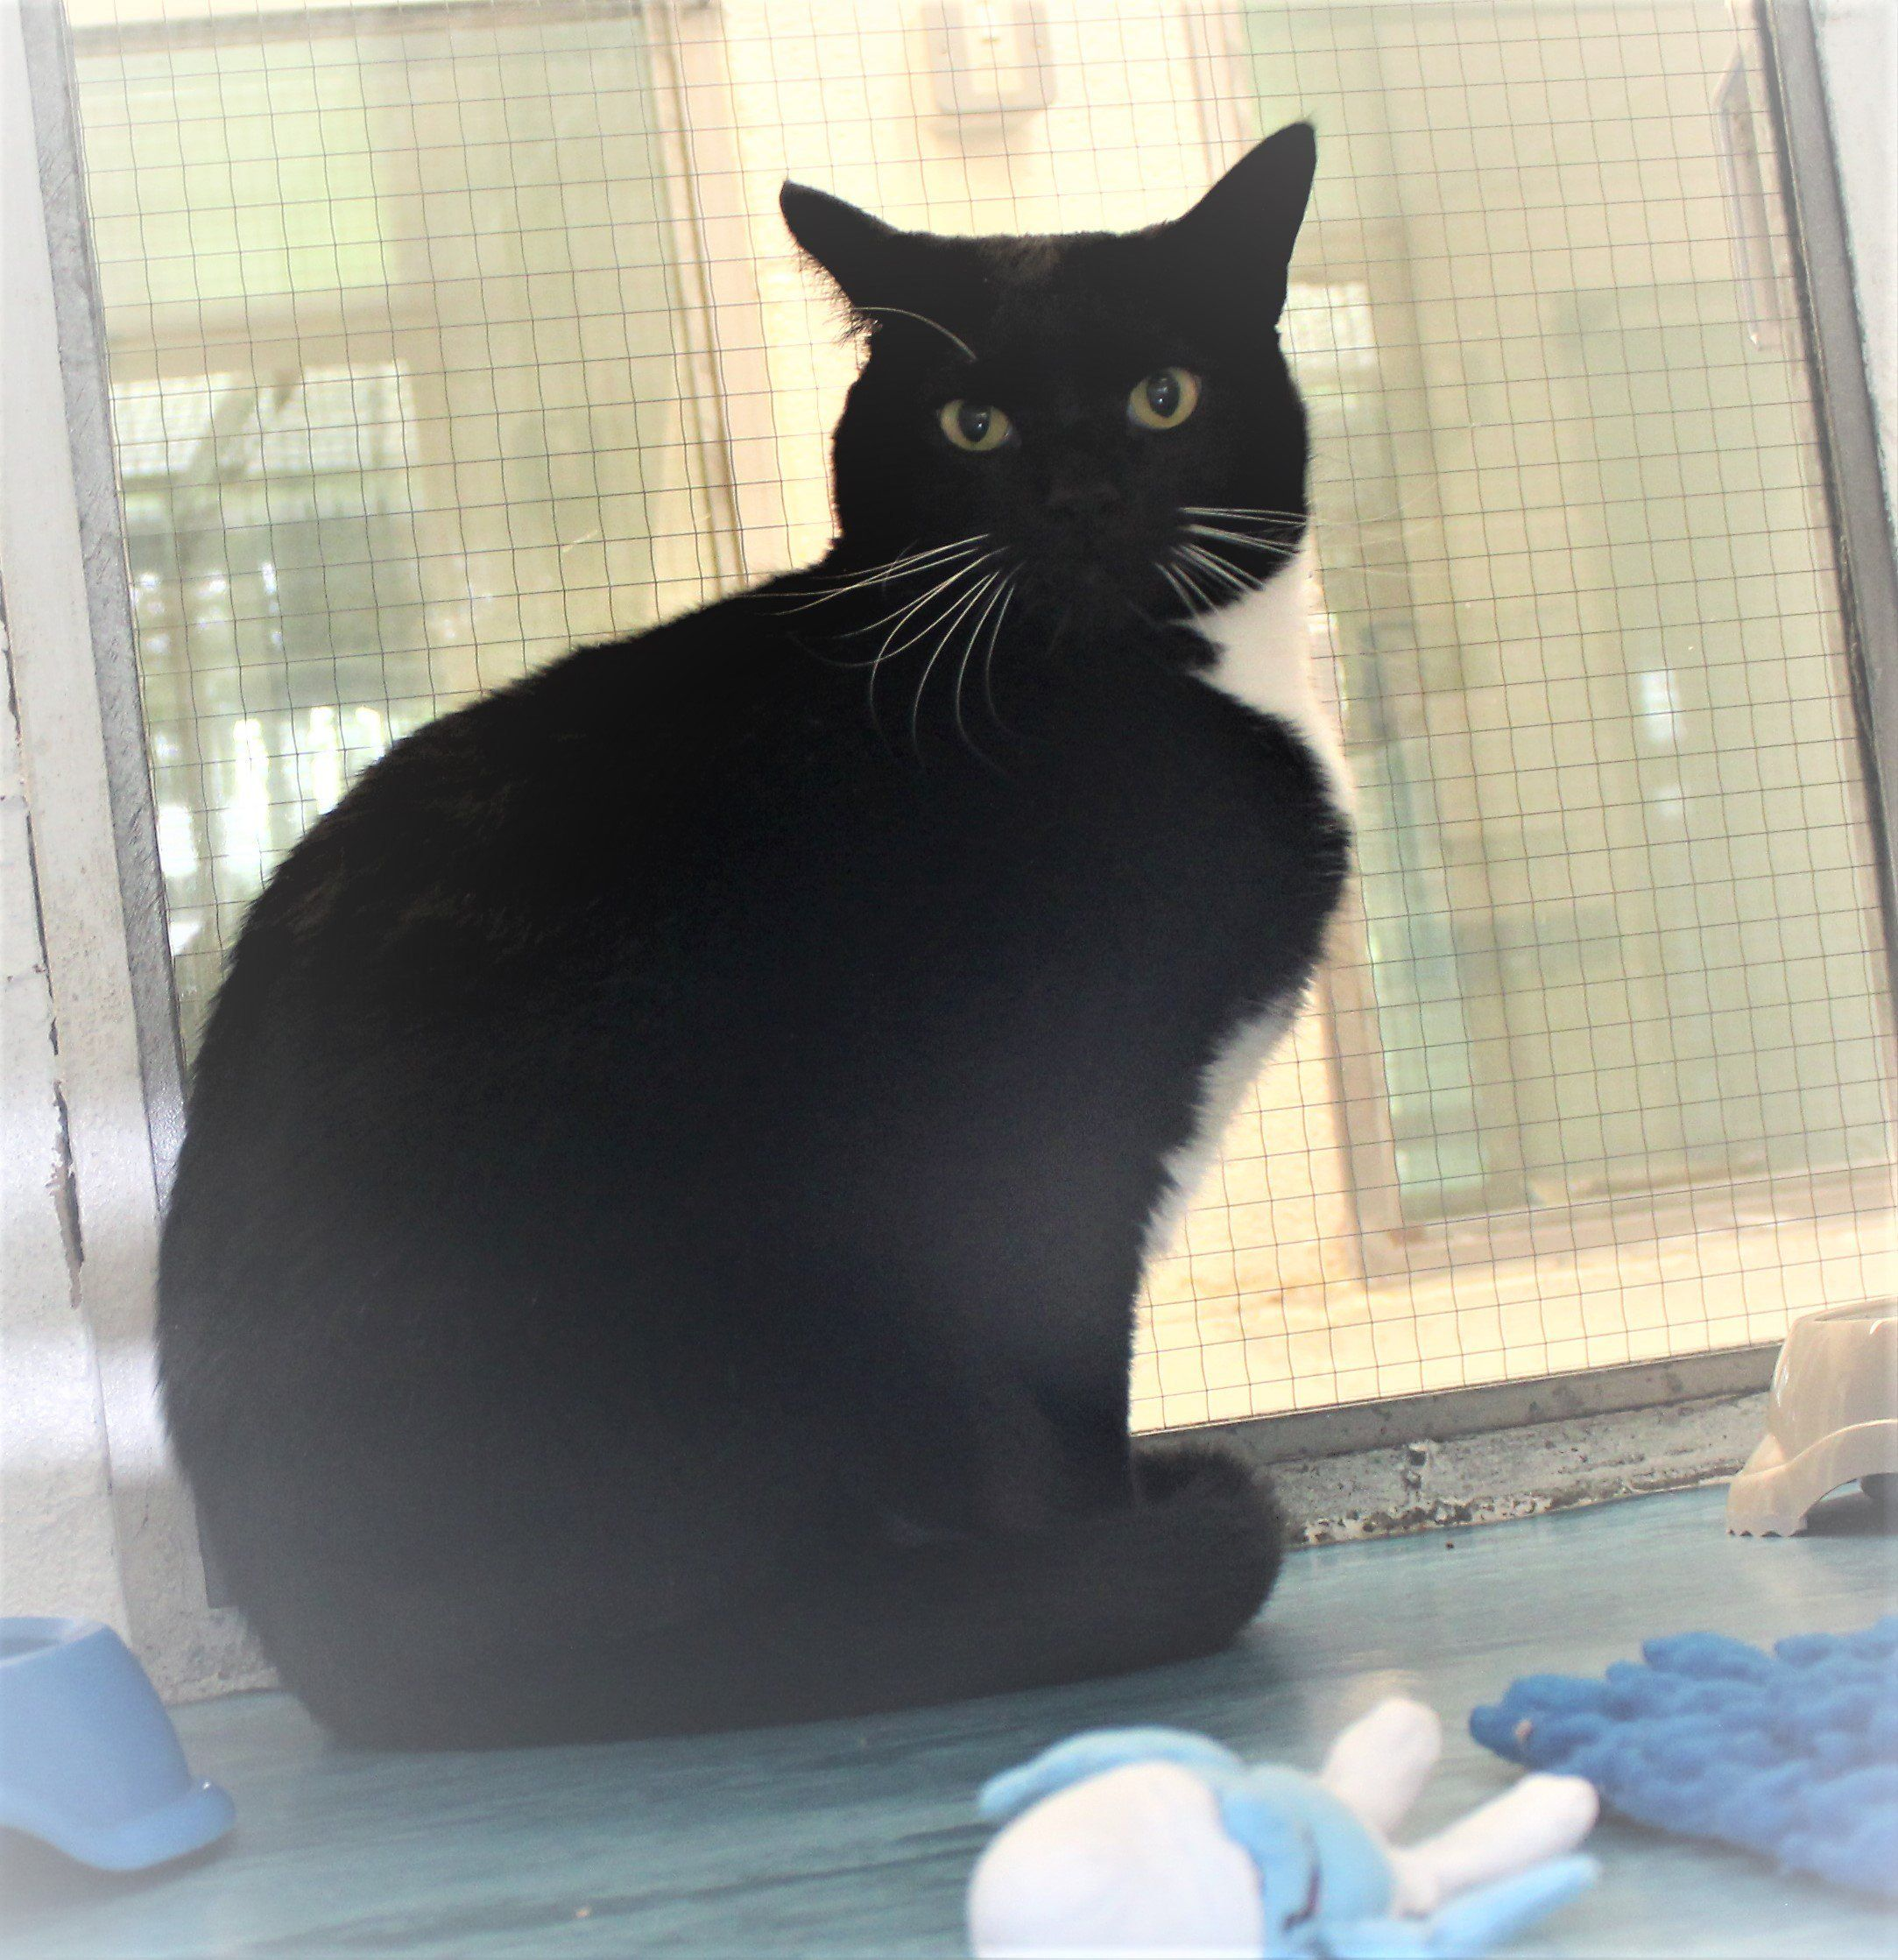 Chico The Good Looking Tuxedo Cat Has Spent 169 Days On The Cats Protection Adoption Centre In Birmingham Uk Please Contemplate Adopting Him Should You Can